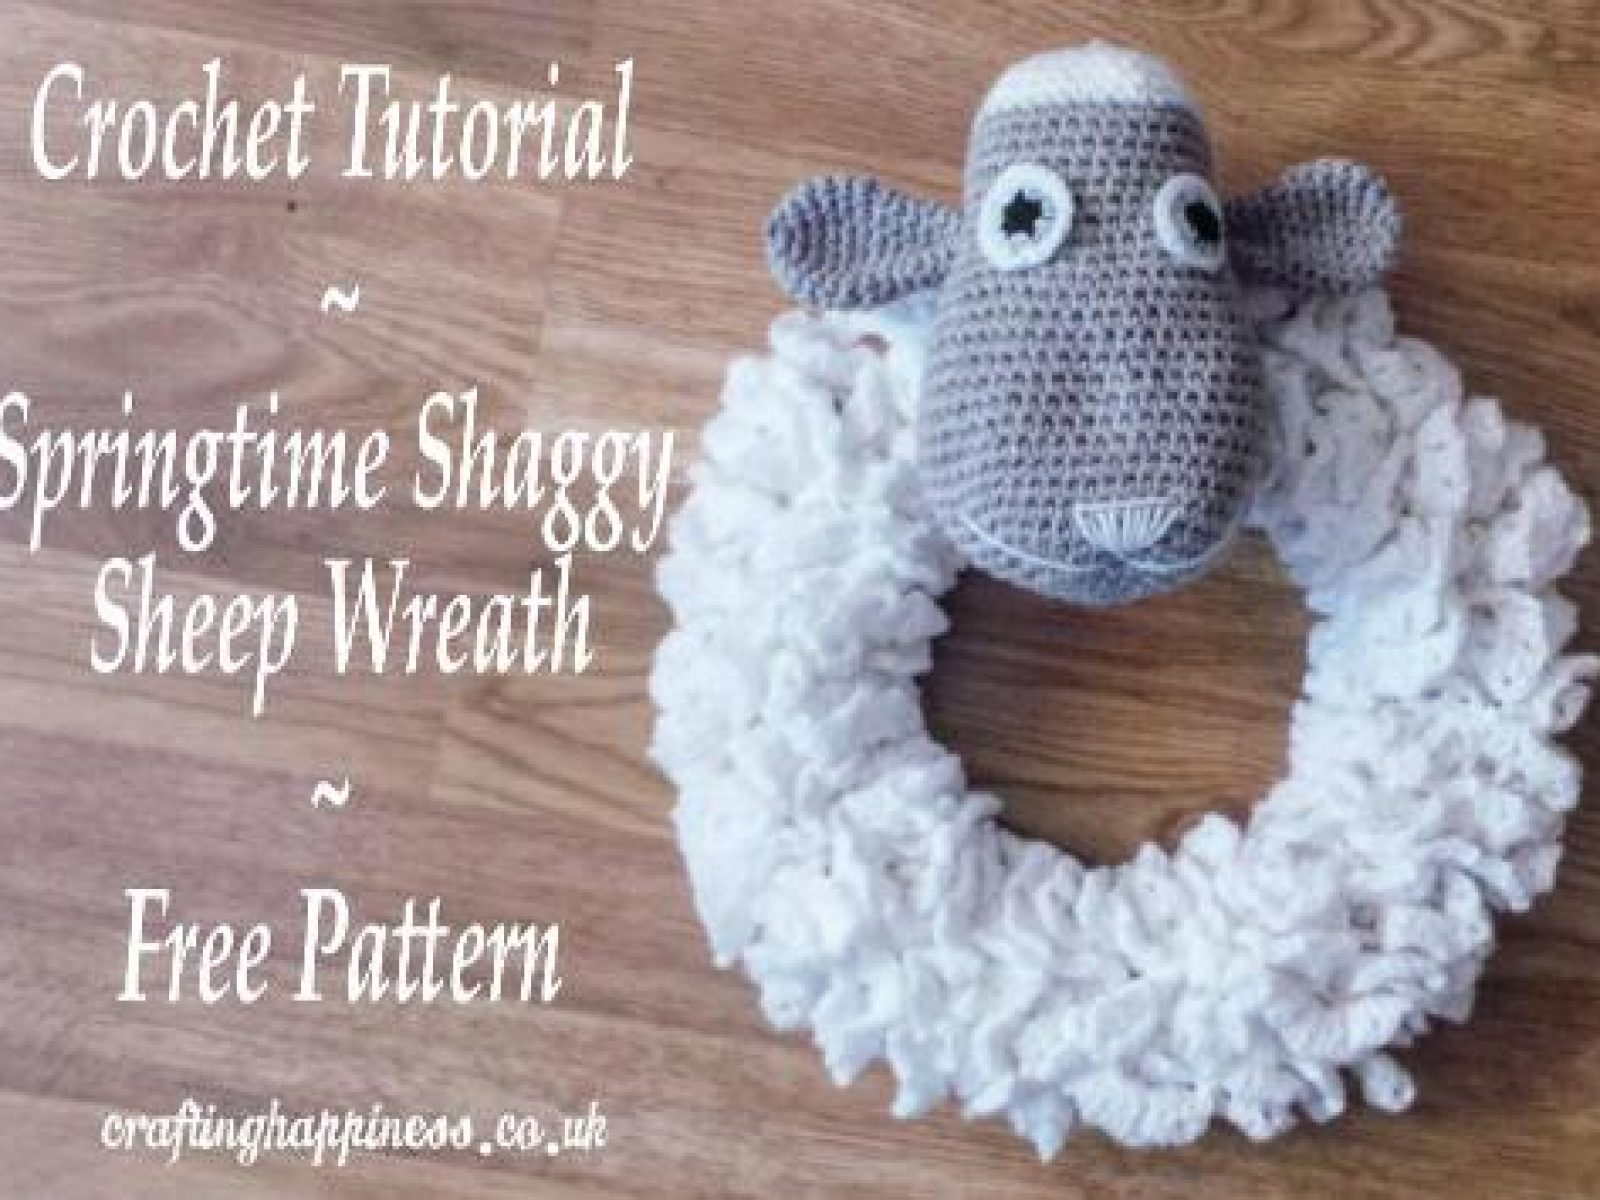 Shaggy Farm Sheep Wreath Free Crochet Pattern